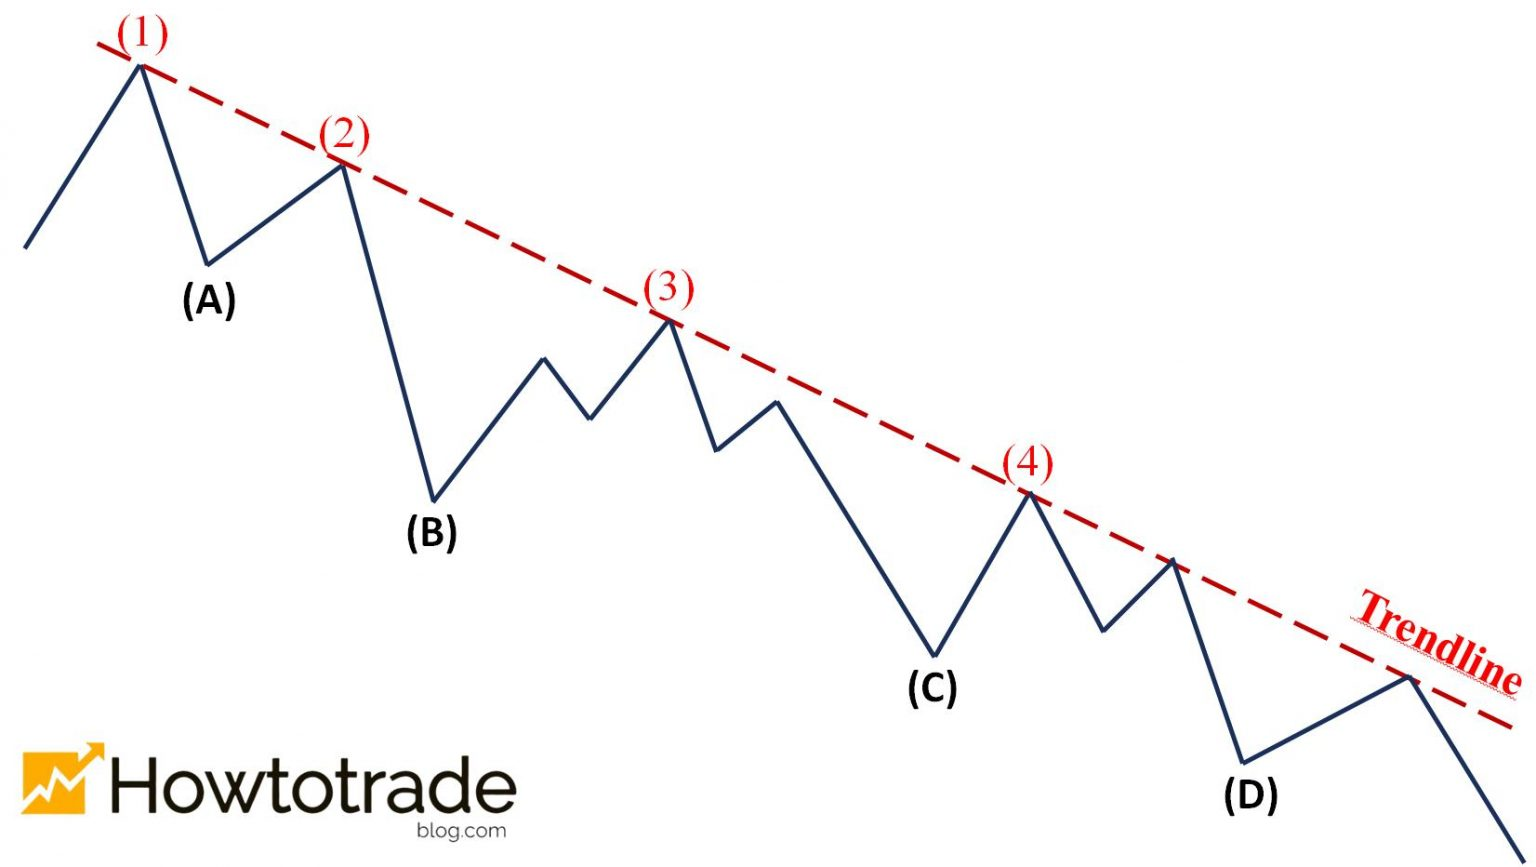 Trendline in a downtrend